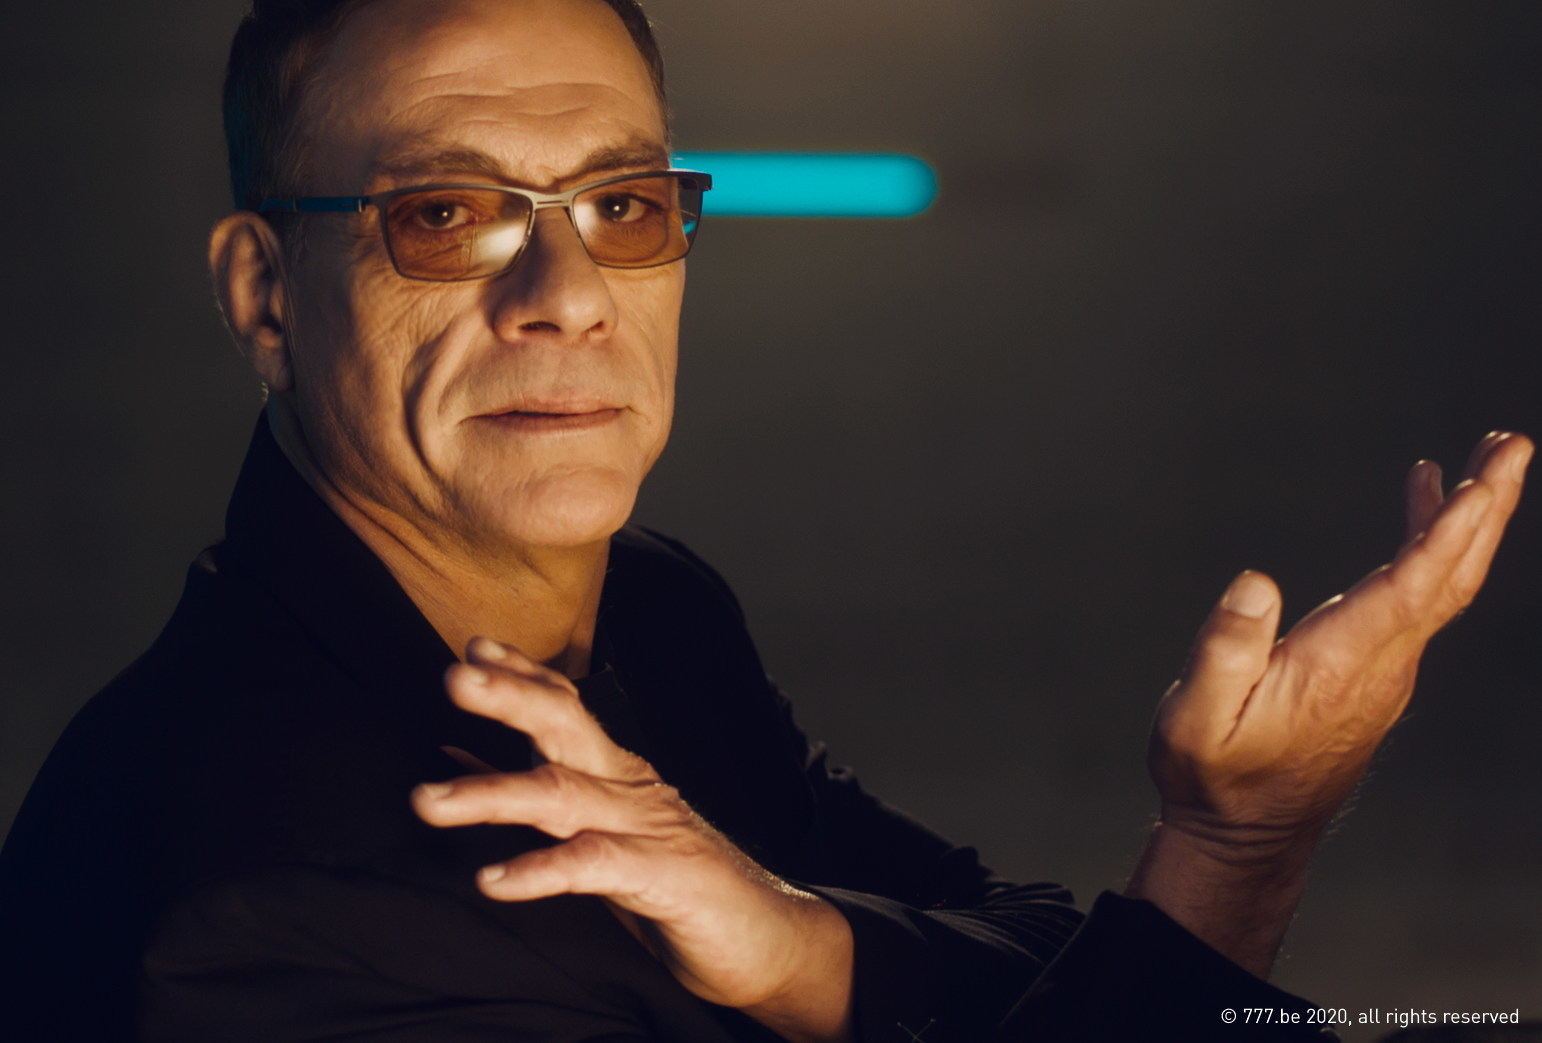 Jean-Claude Van Damme signs on as on new 777.be rep